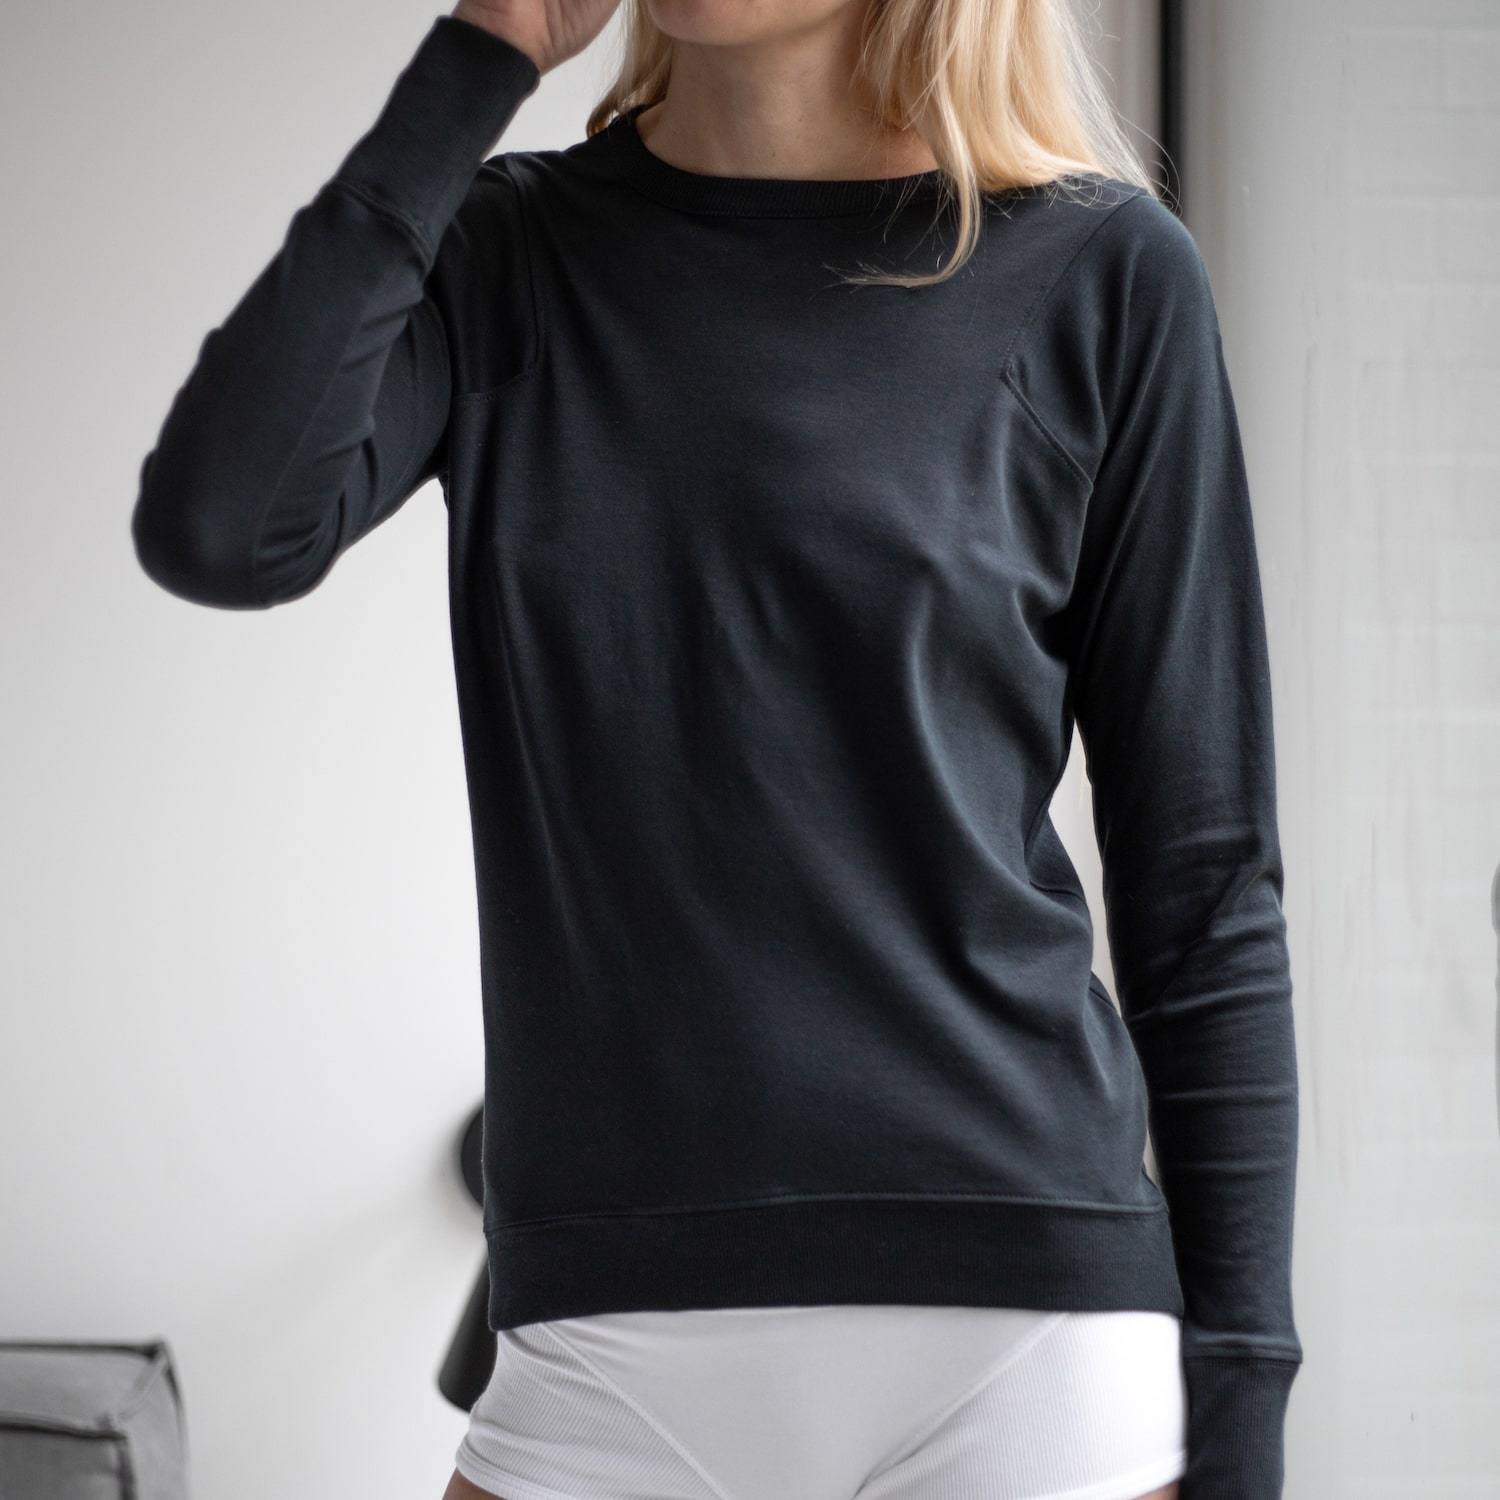 Lunya Sleepwear Organic Pima Long Sleeve Tee - #Black